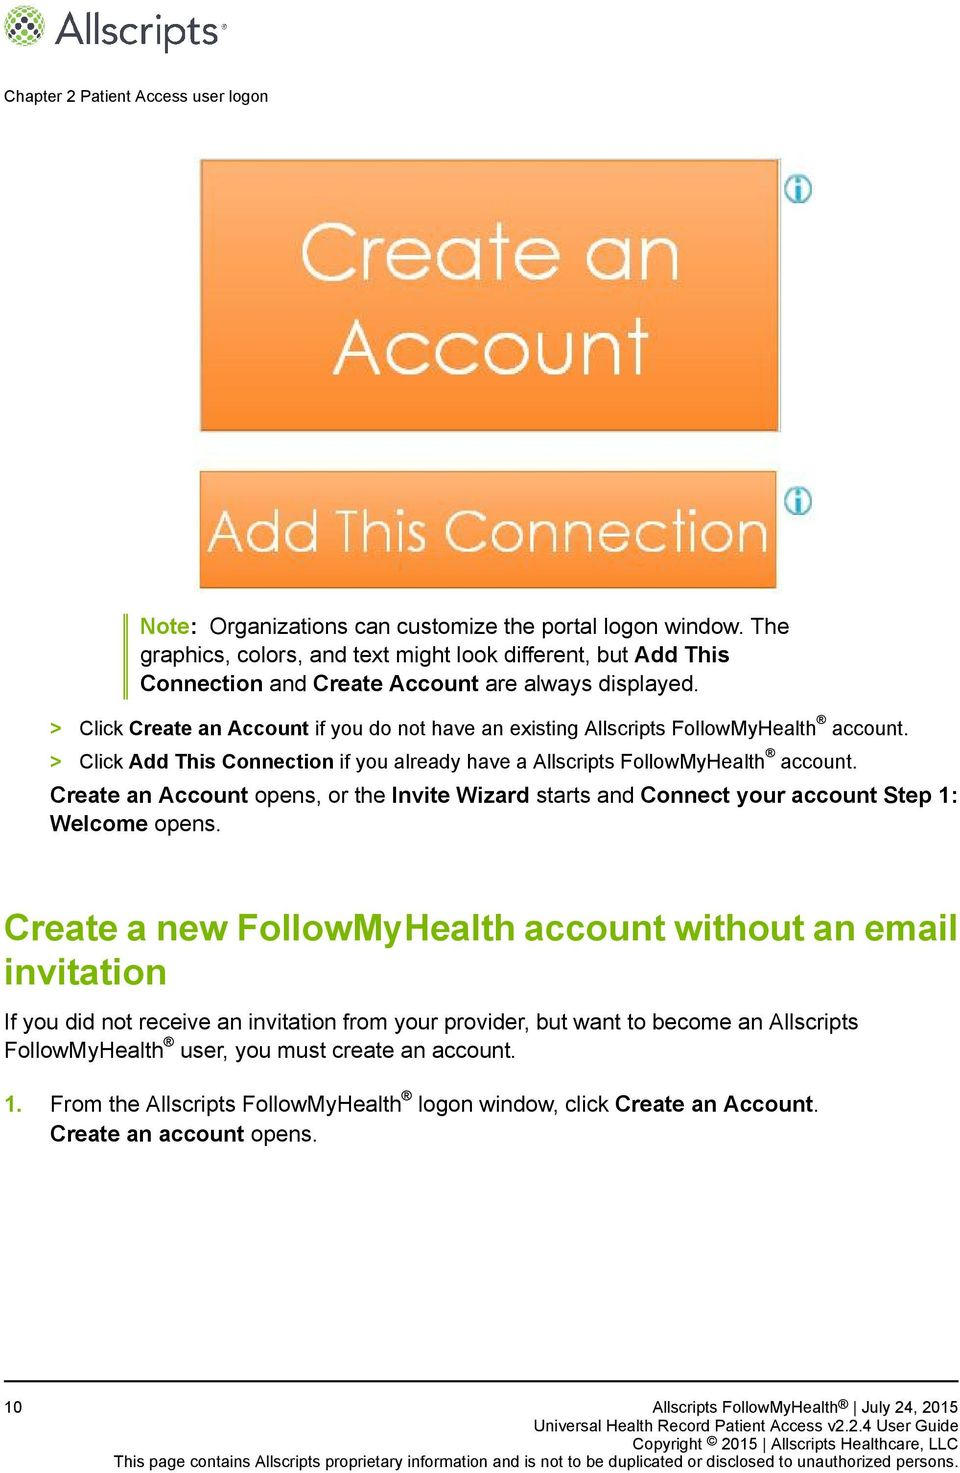 > Click Create an Account if you do not have an existing Allscripts FollowMyHealth account. > Click Add This Connection if you already have a Allscripts FollowMyHealth account.